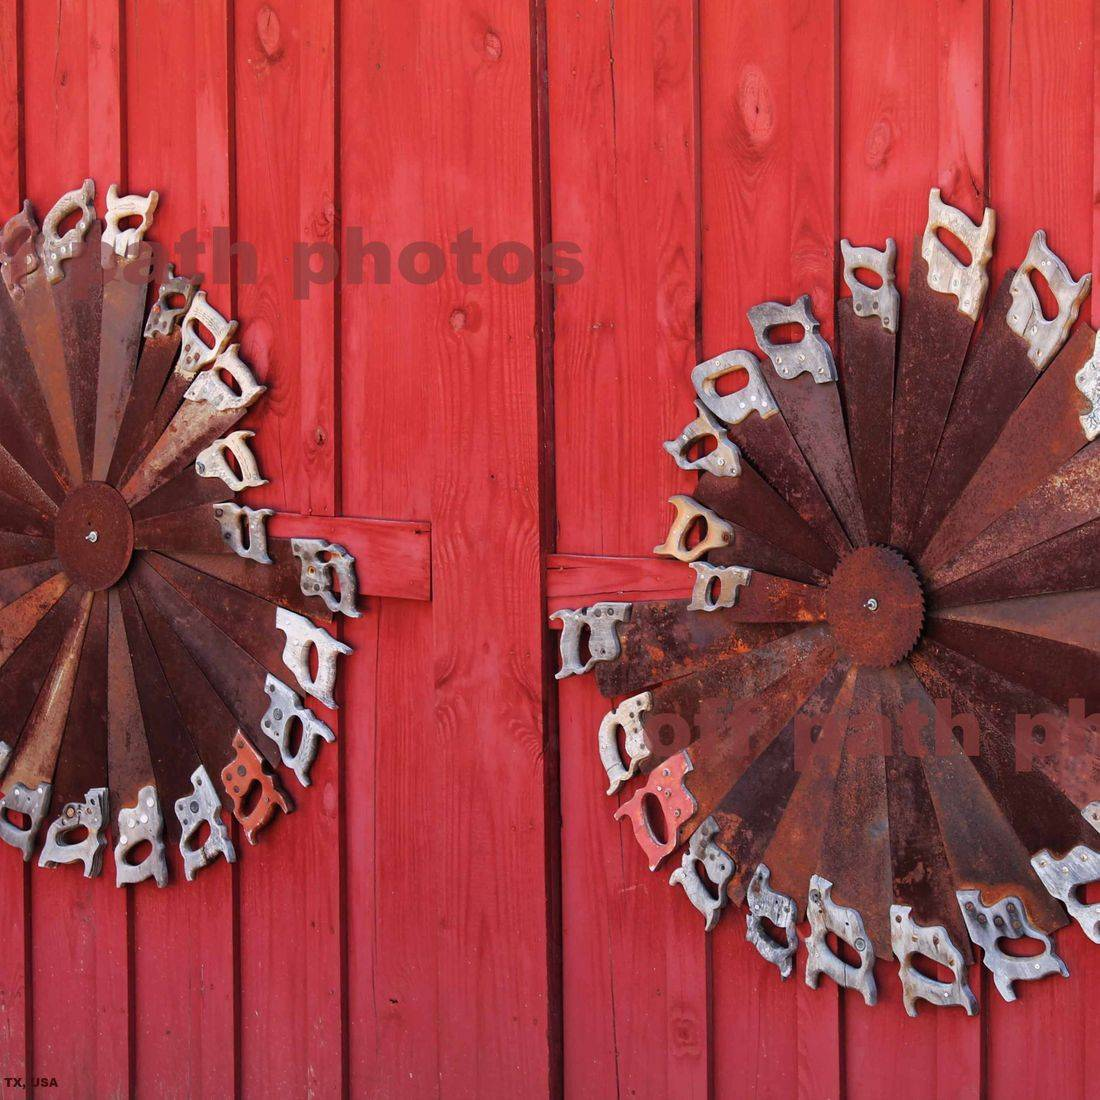 photography, saws, tools, antiques, barn door, rusty, country, farm, red